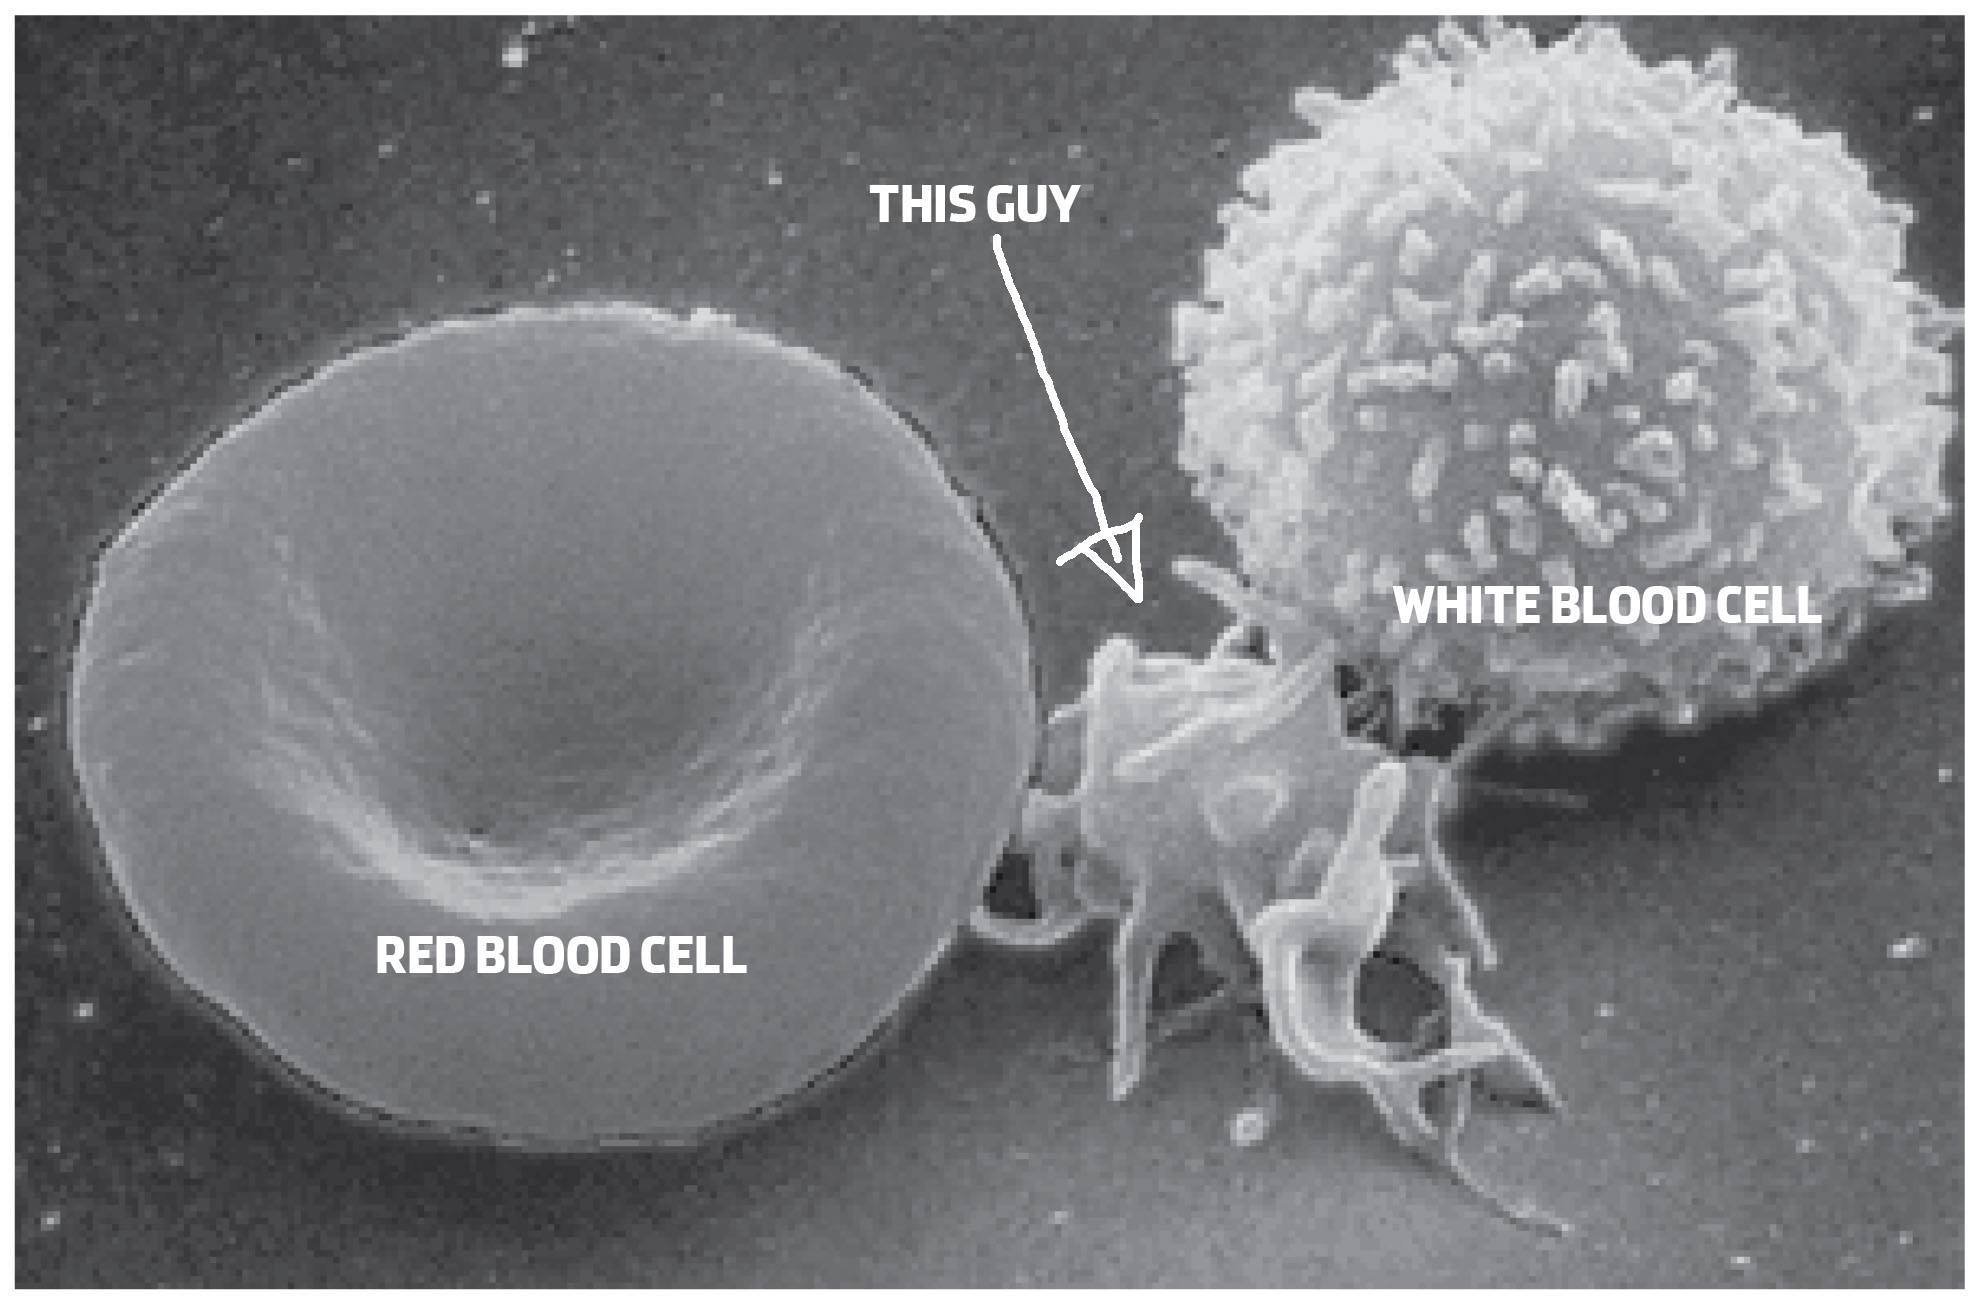 What Are Platelets And Why Do We Need Them Blood White Cell Diagram For Kids Cells Red First They